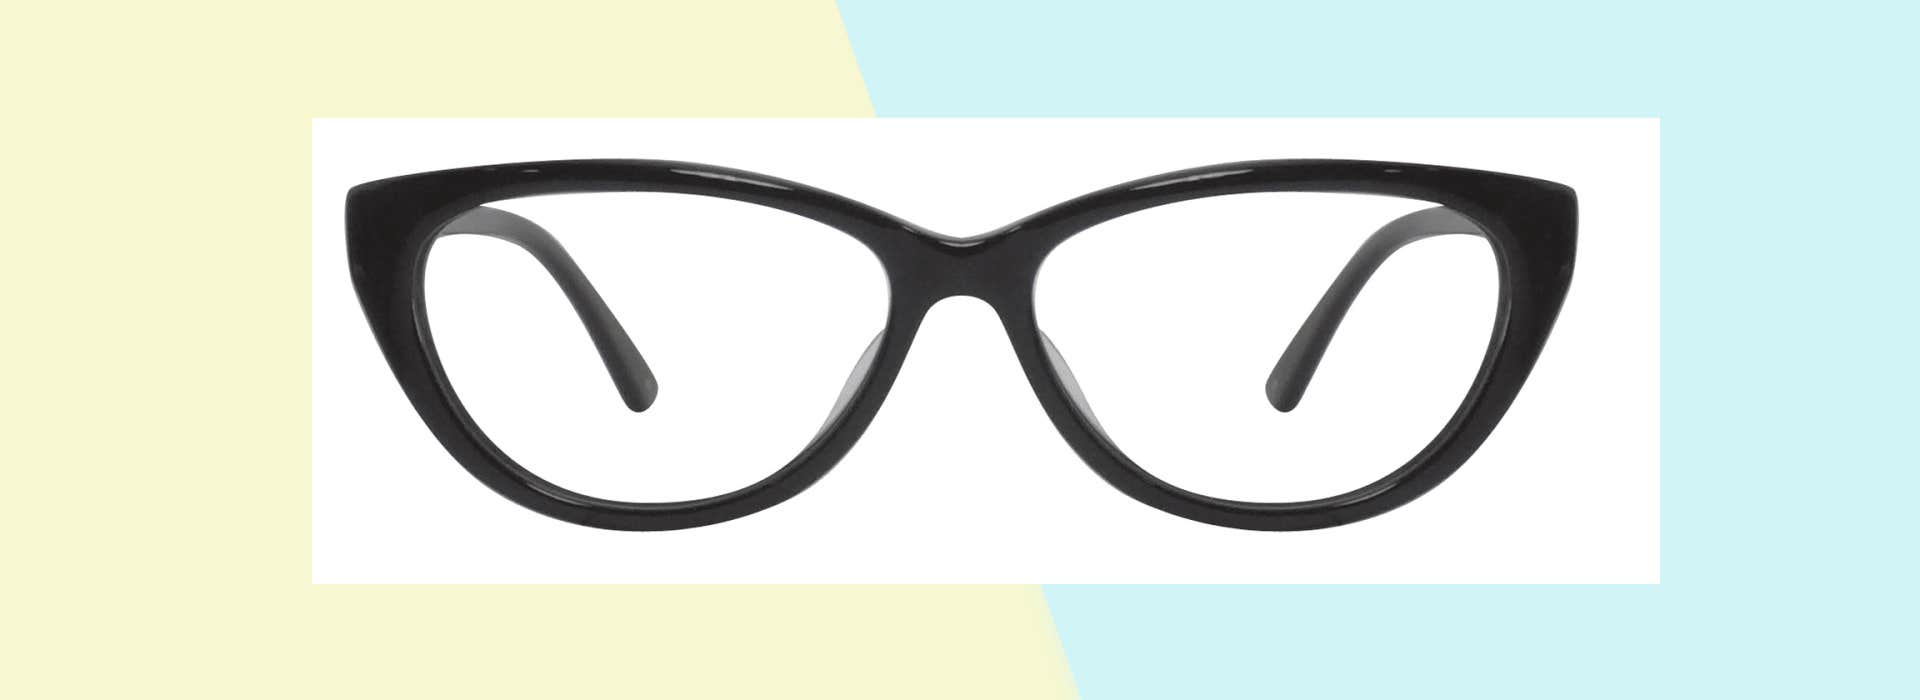 Buy The Black Cat Eye Eyeglasses Here